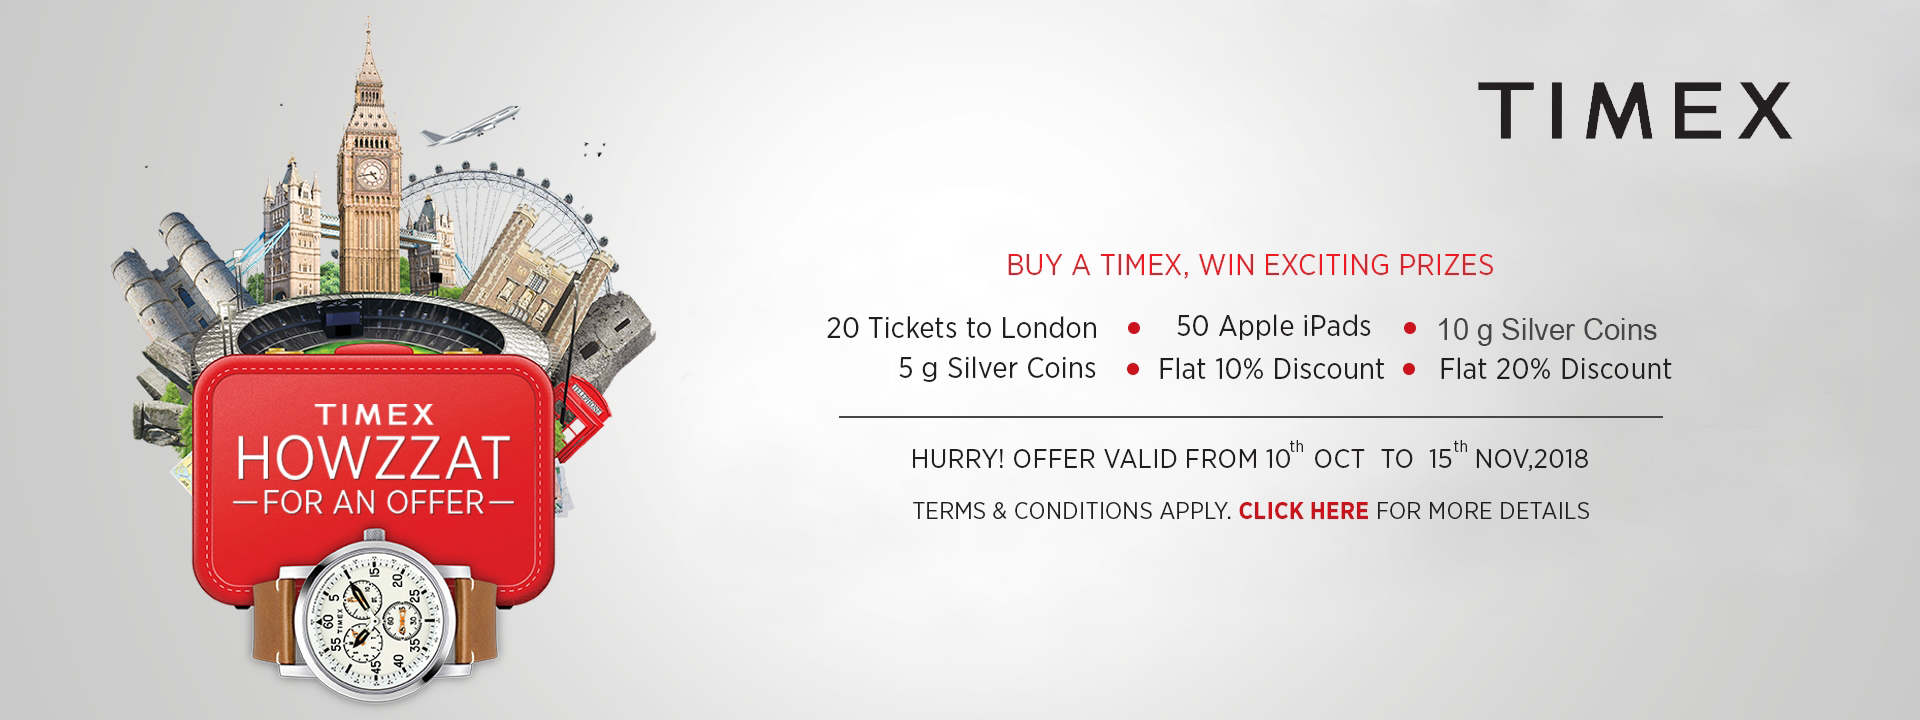 Your Dream Trip to London Begins with A Timex